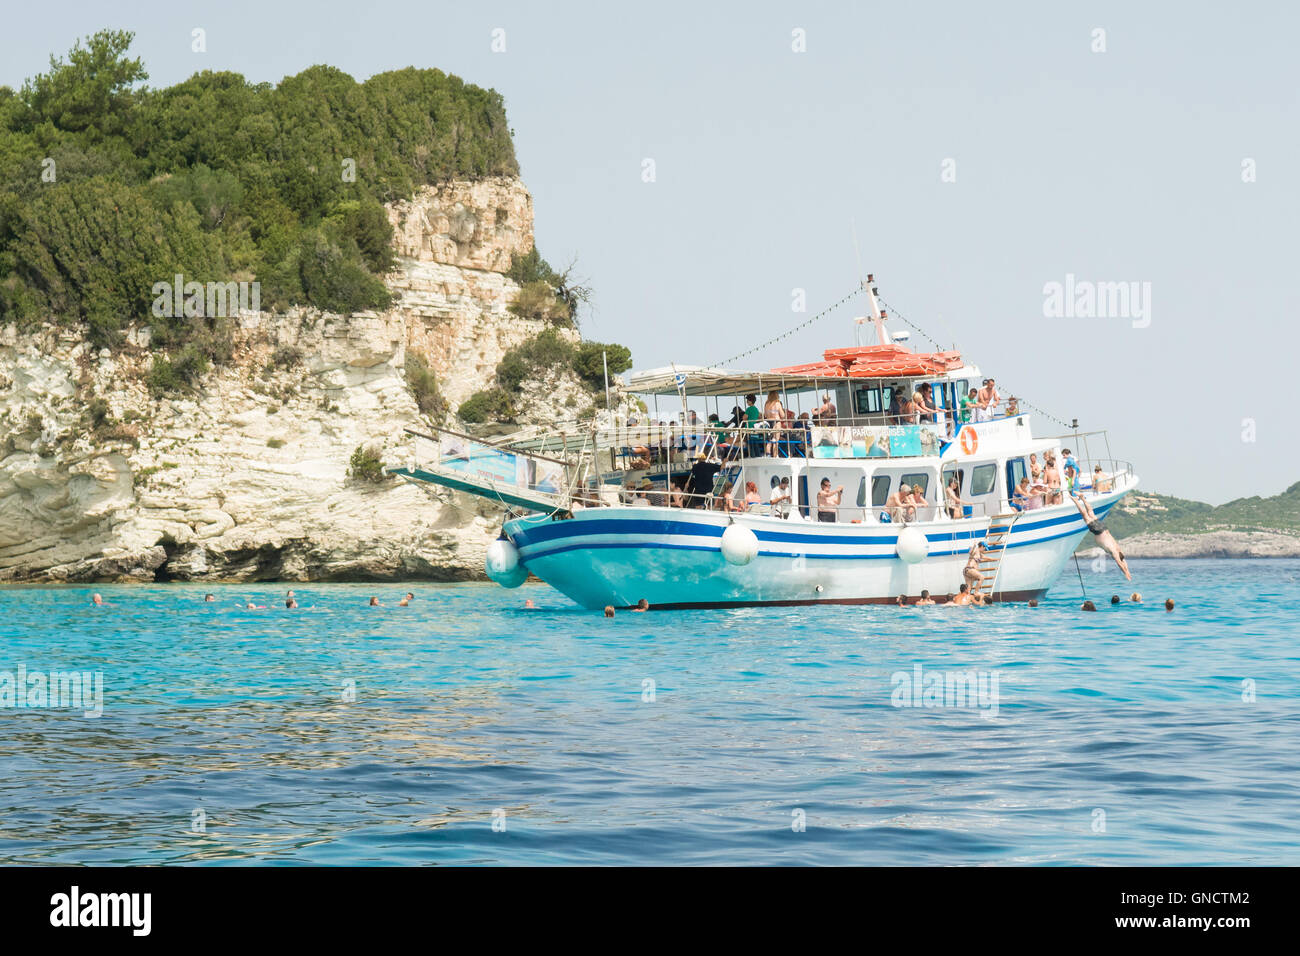 Tourists on a day trip from nearby Corfu swimming in the sea from a cruise boat moored off the tiny Ionian island - Stock Image